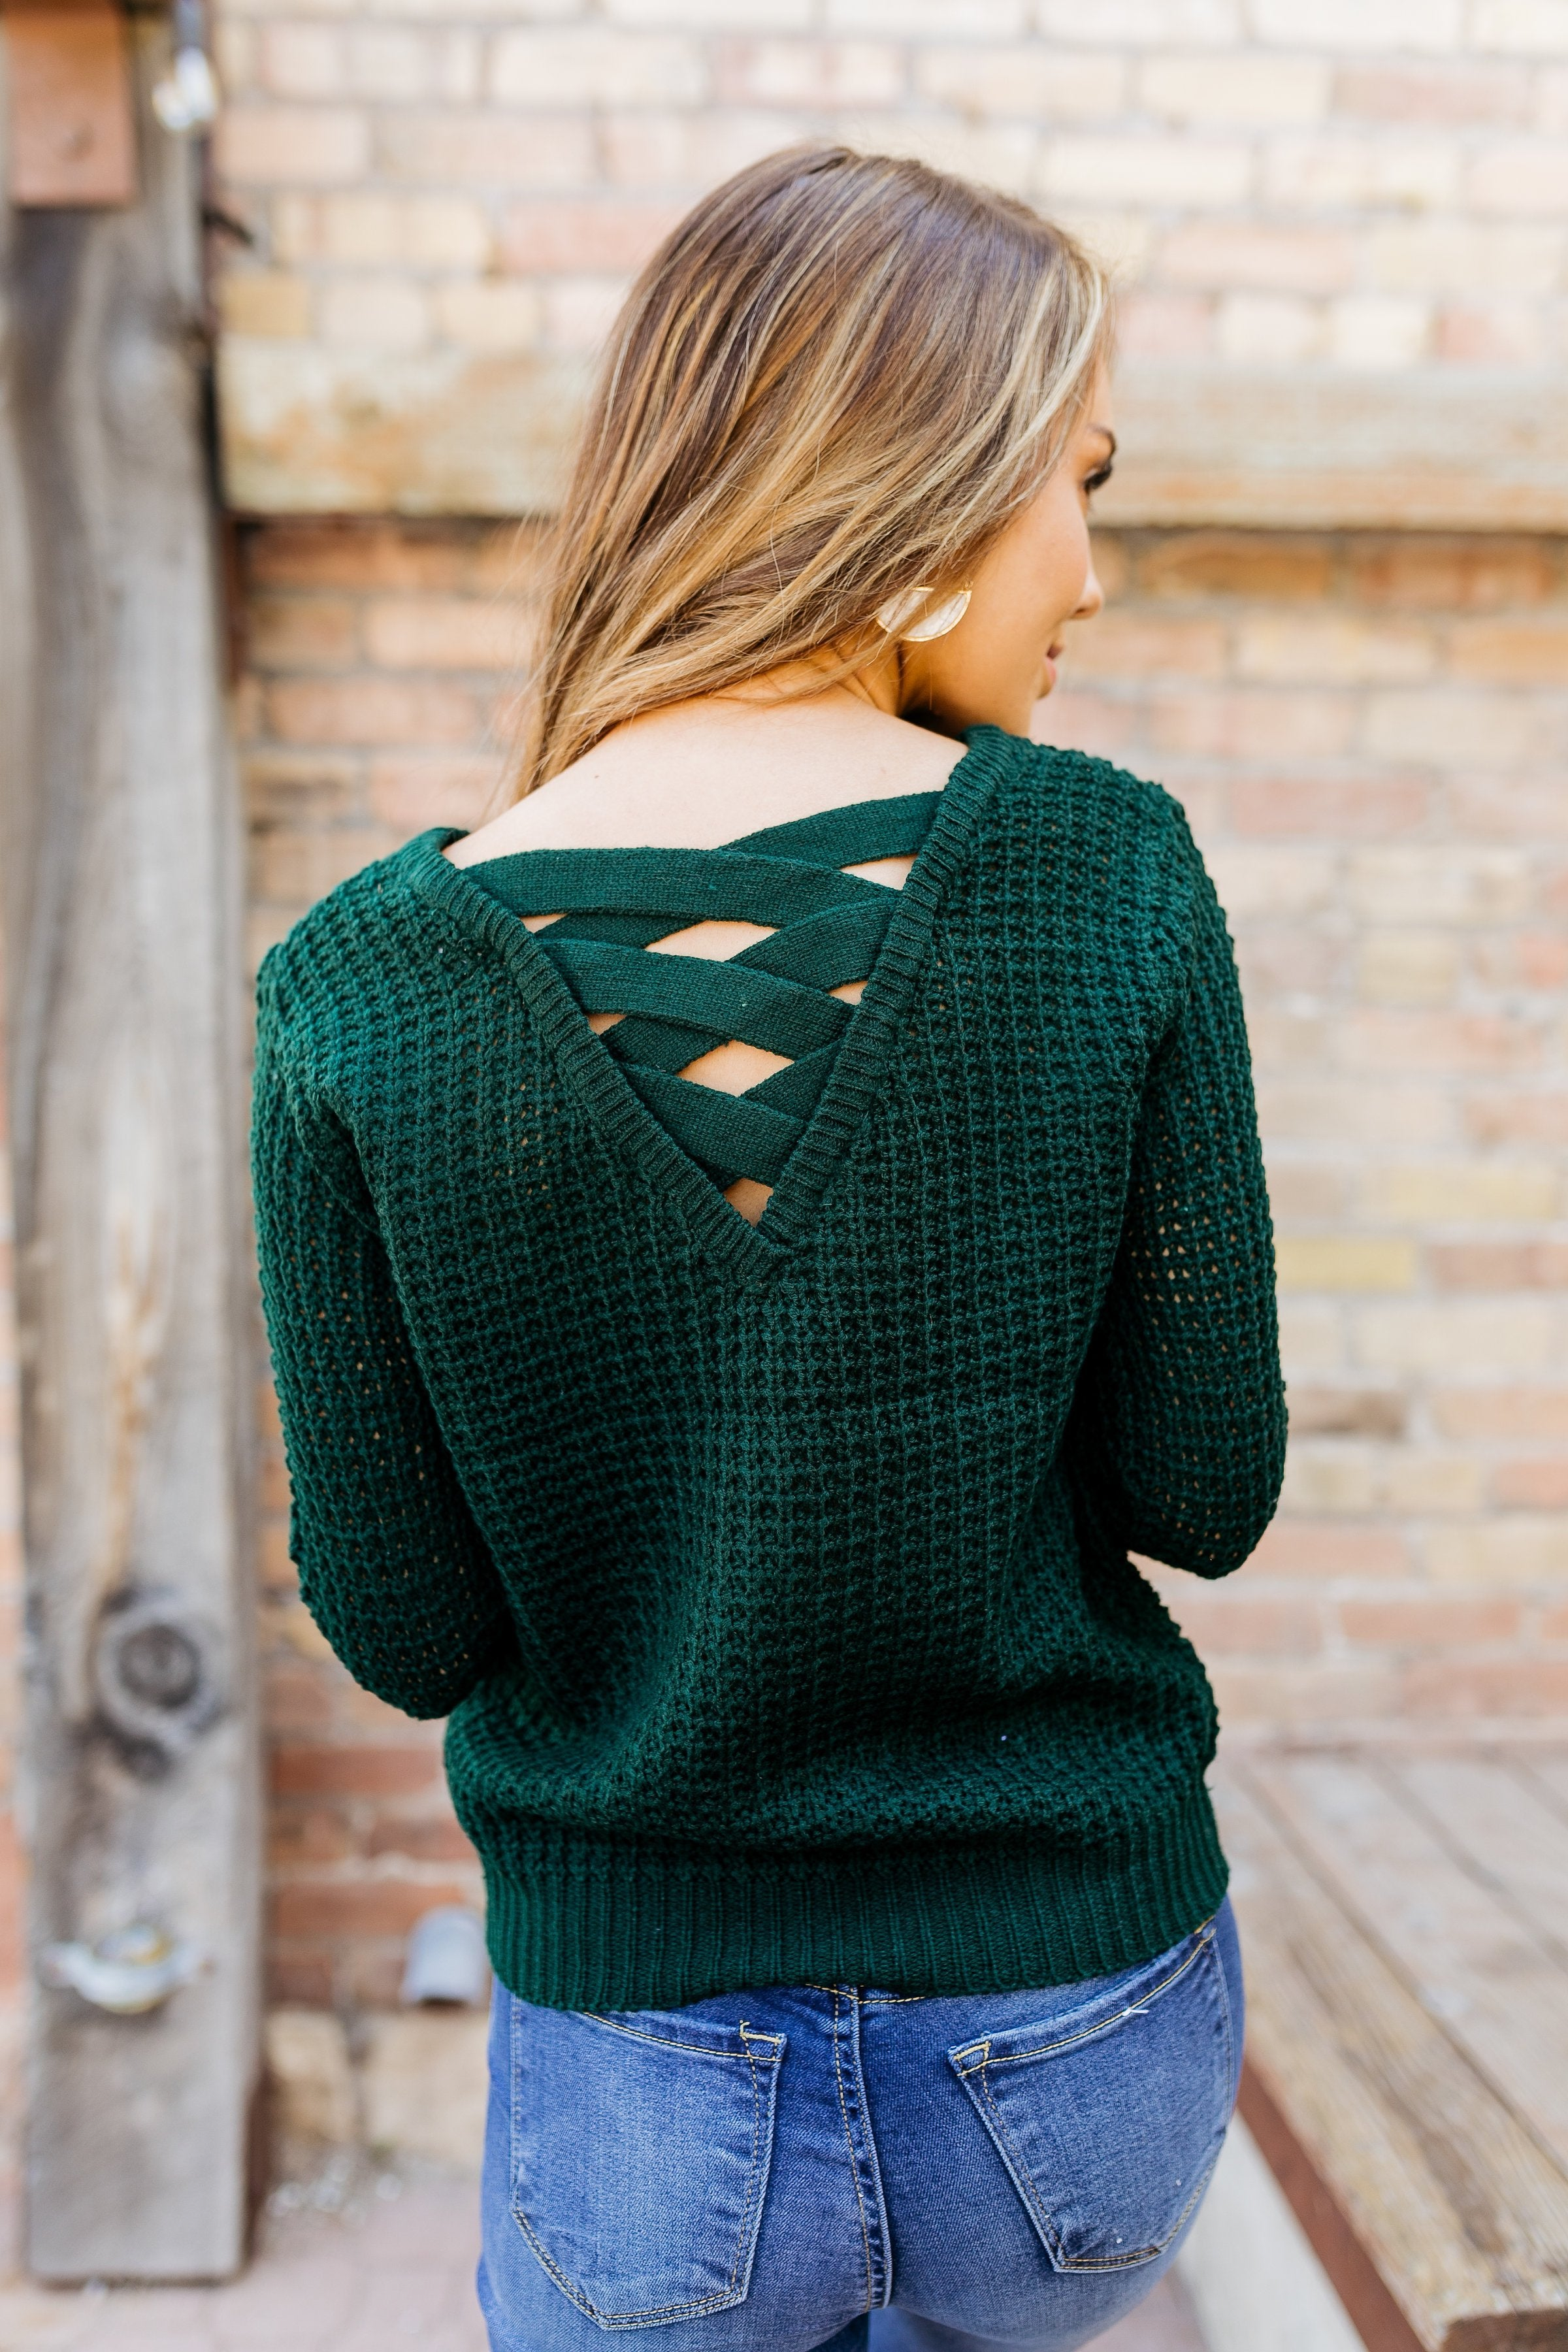 Criss Cross Applesauce Hunter Green Sweater